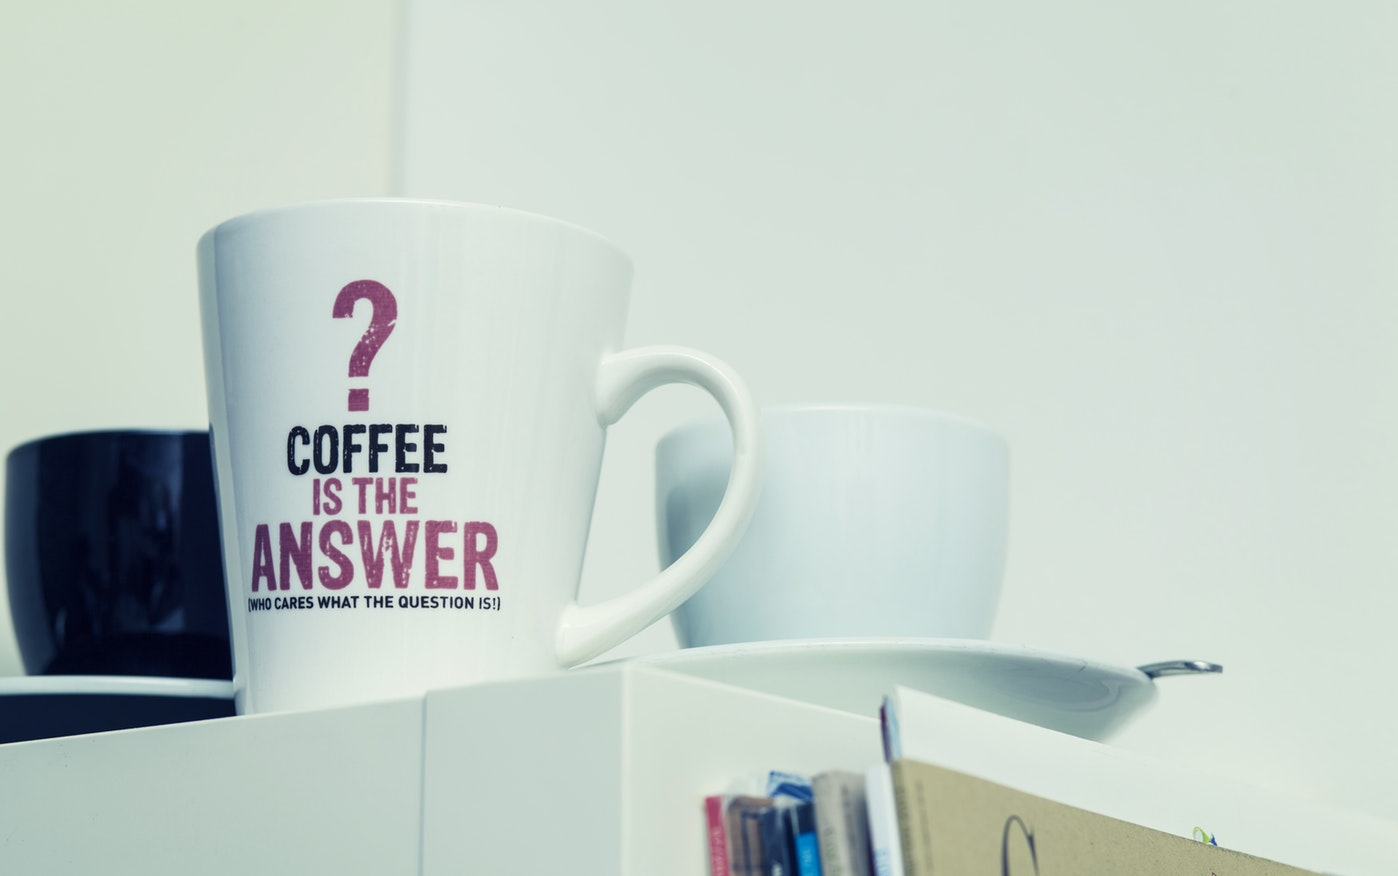 Picture of a cofee mug with a question mug